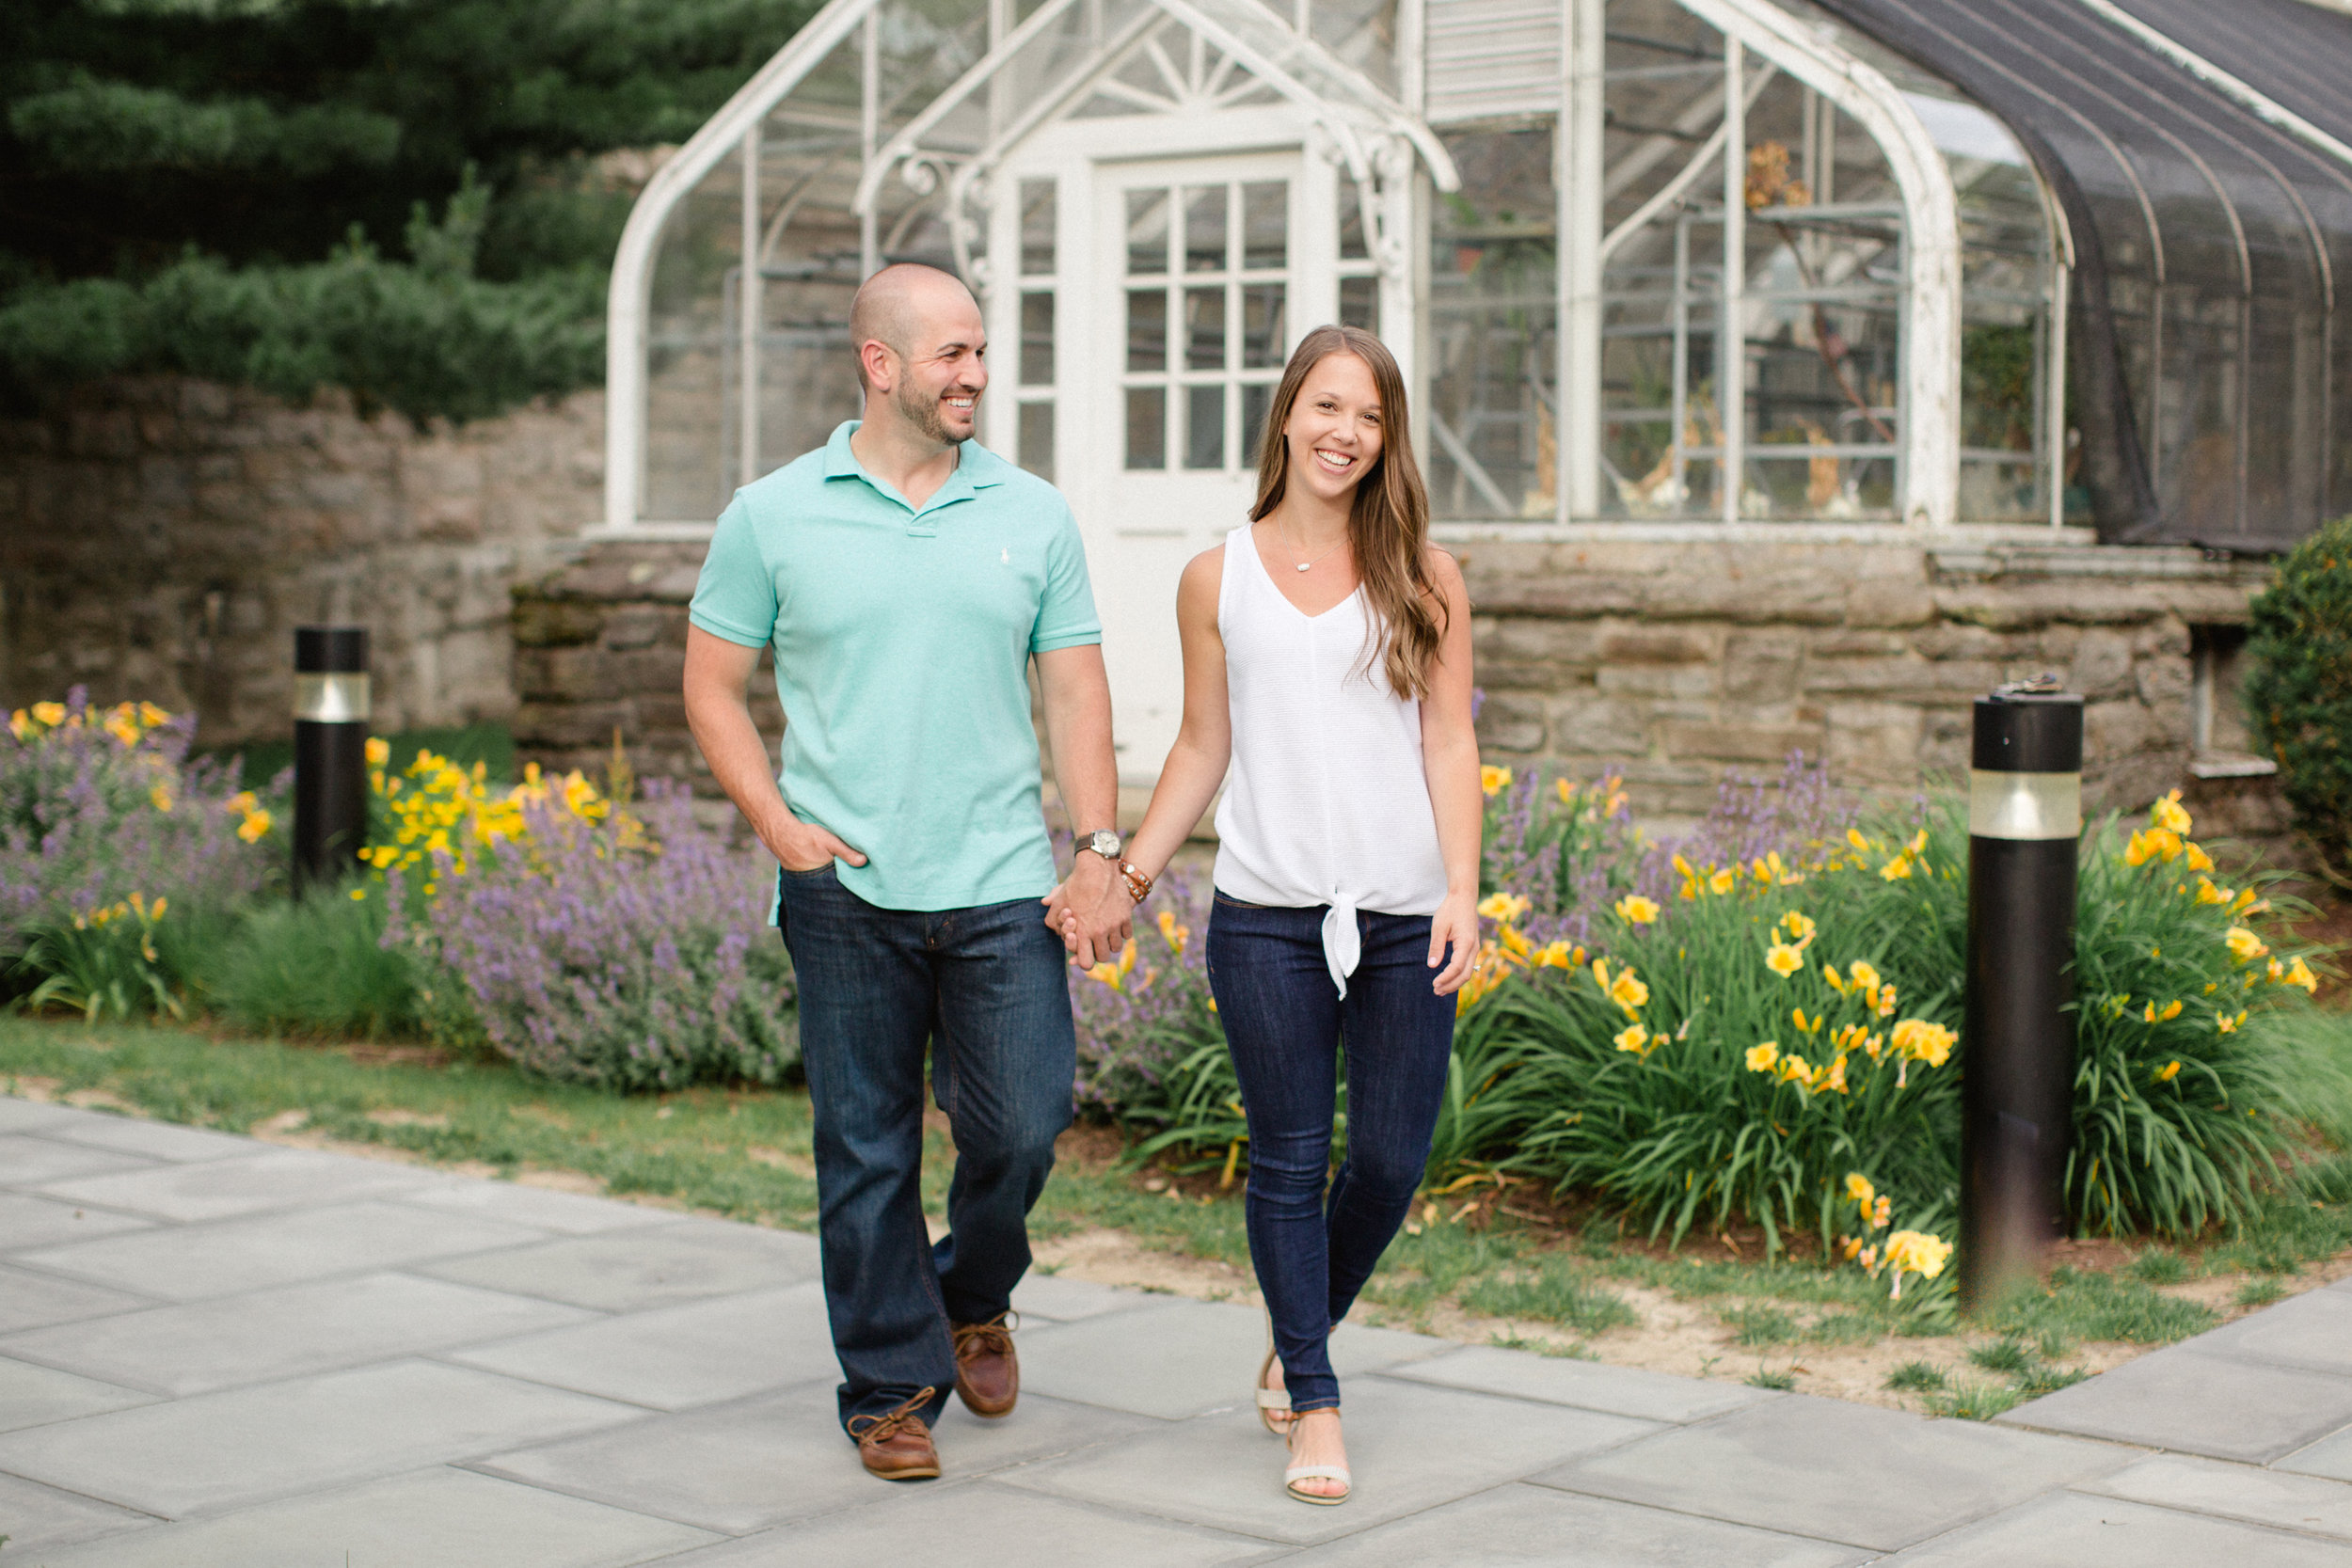 University of Scranton Engagement Session Photos_JDP-1.jpg